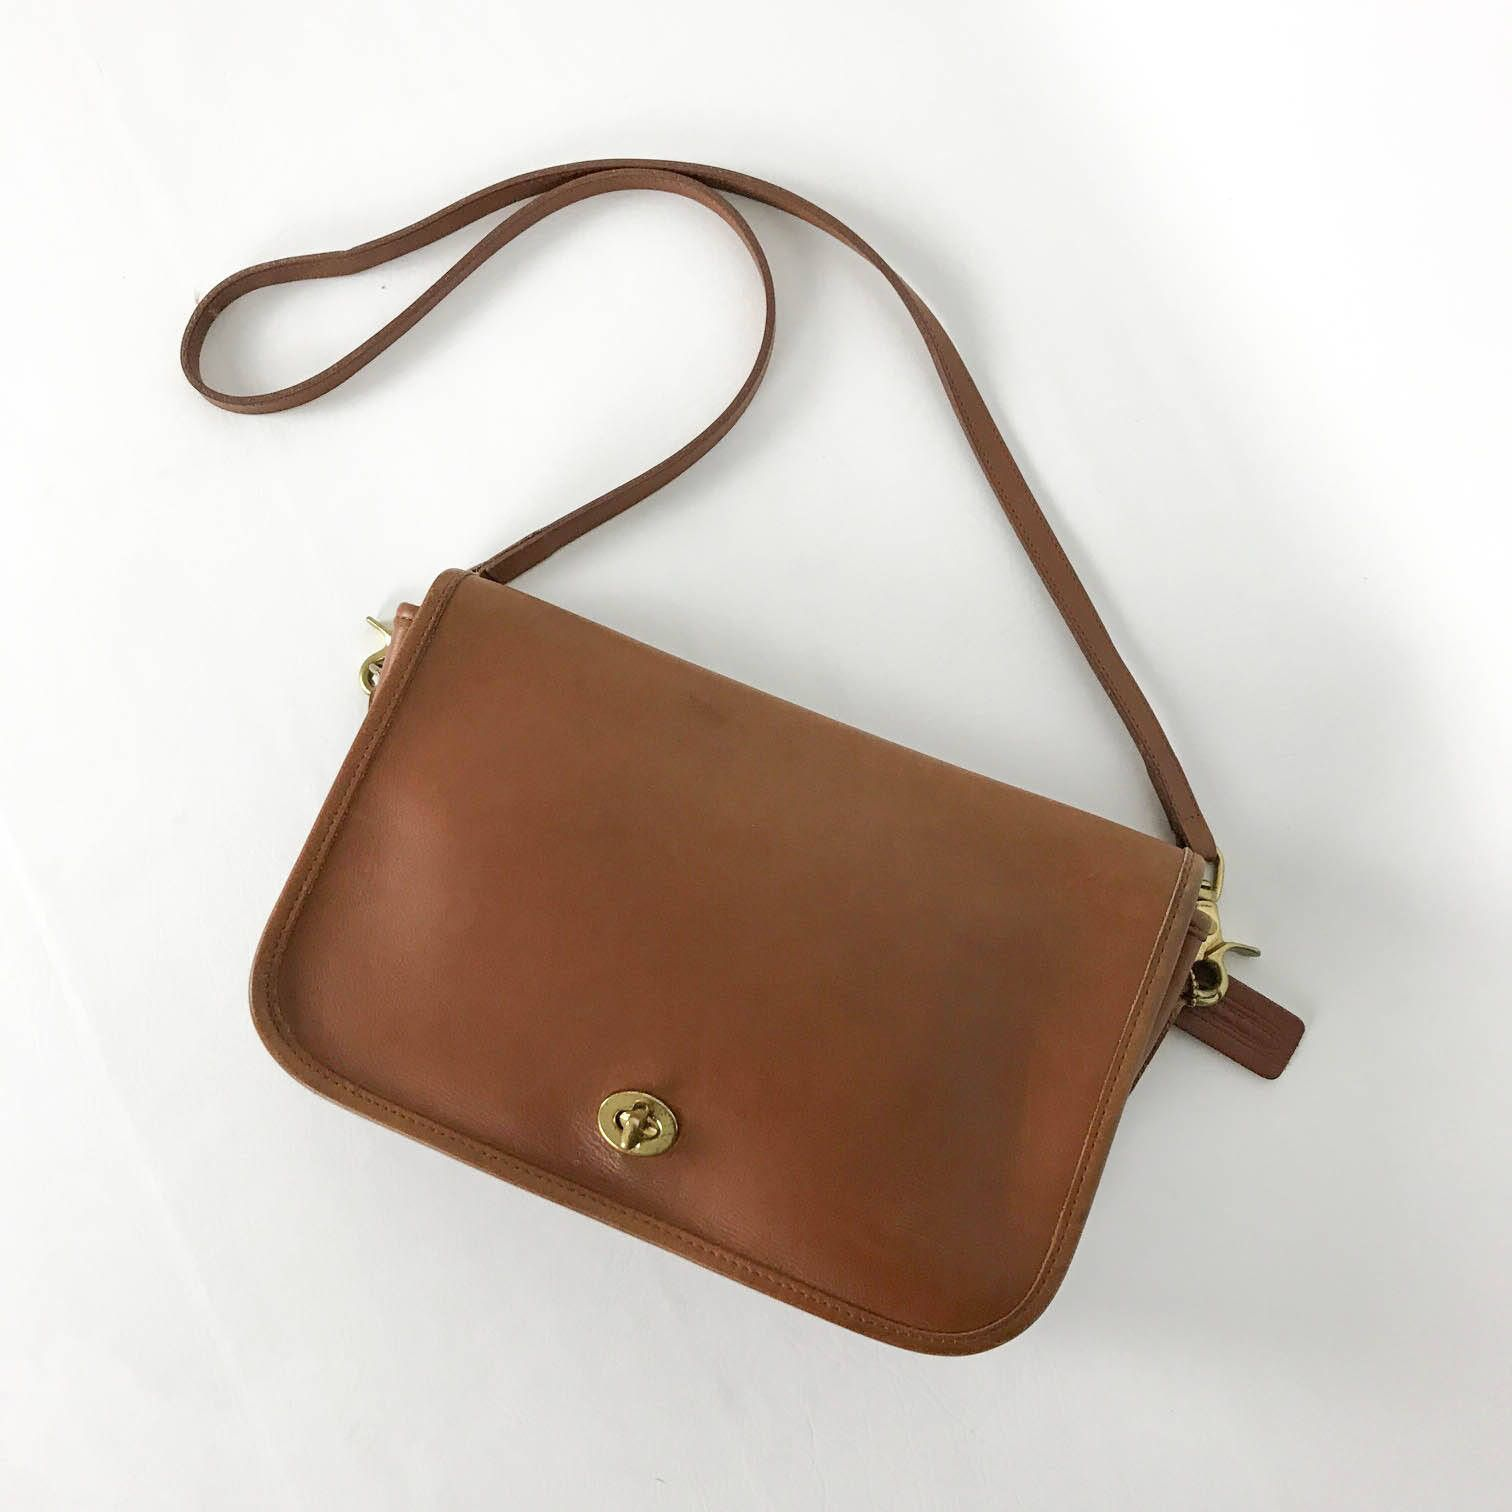 Leather Fashion · Vintage Coach Bag a3edcc38e8c4f